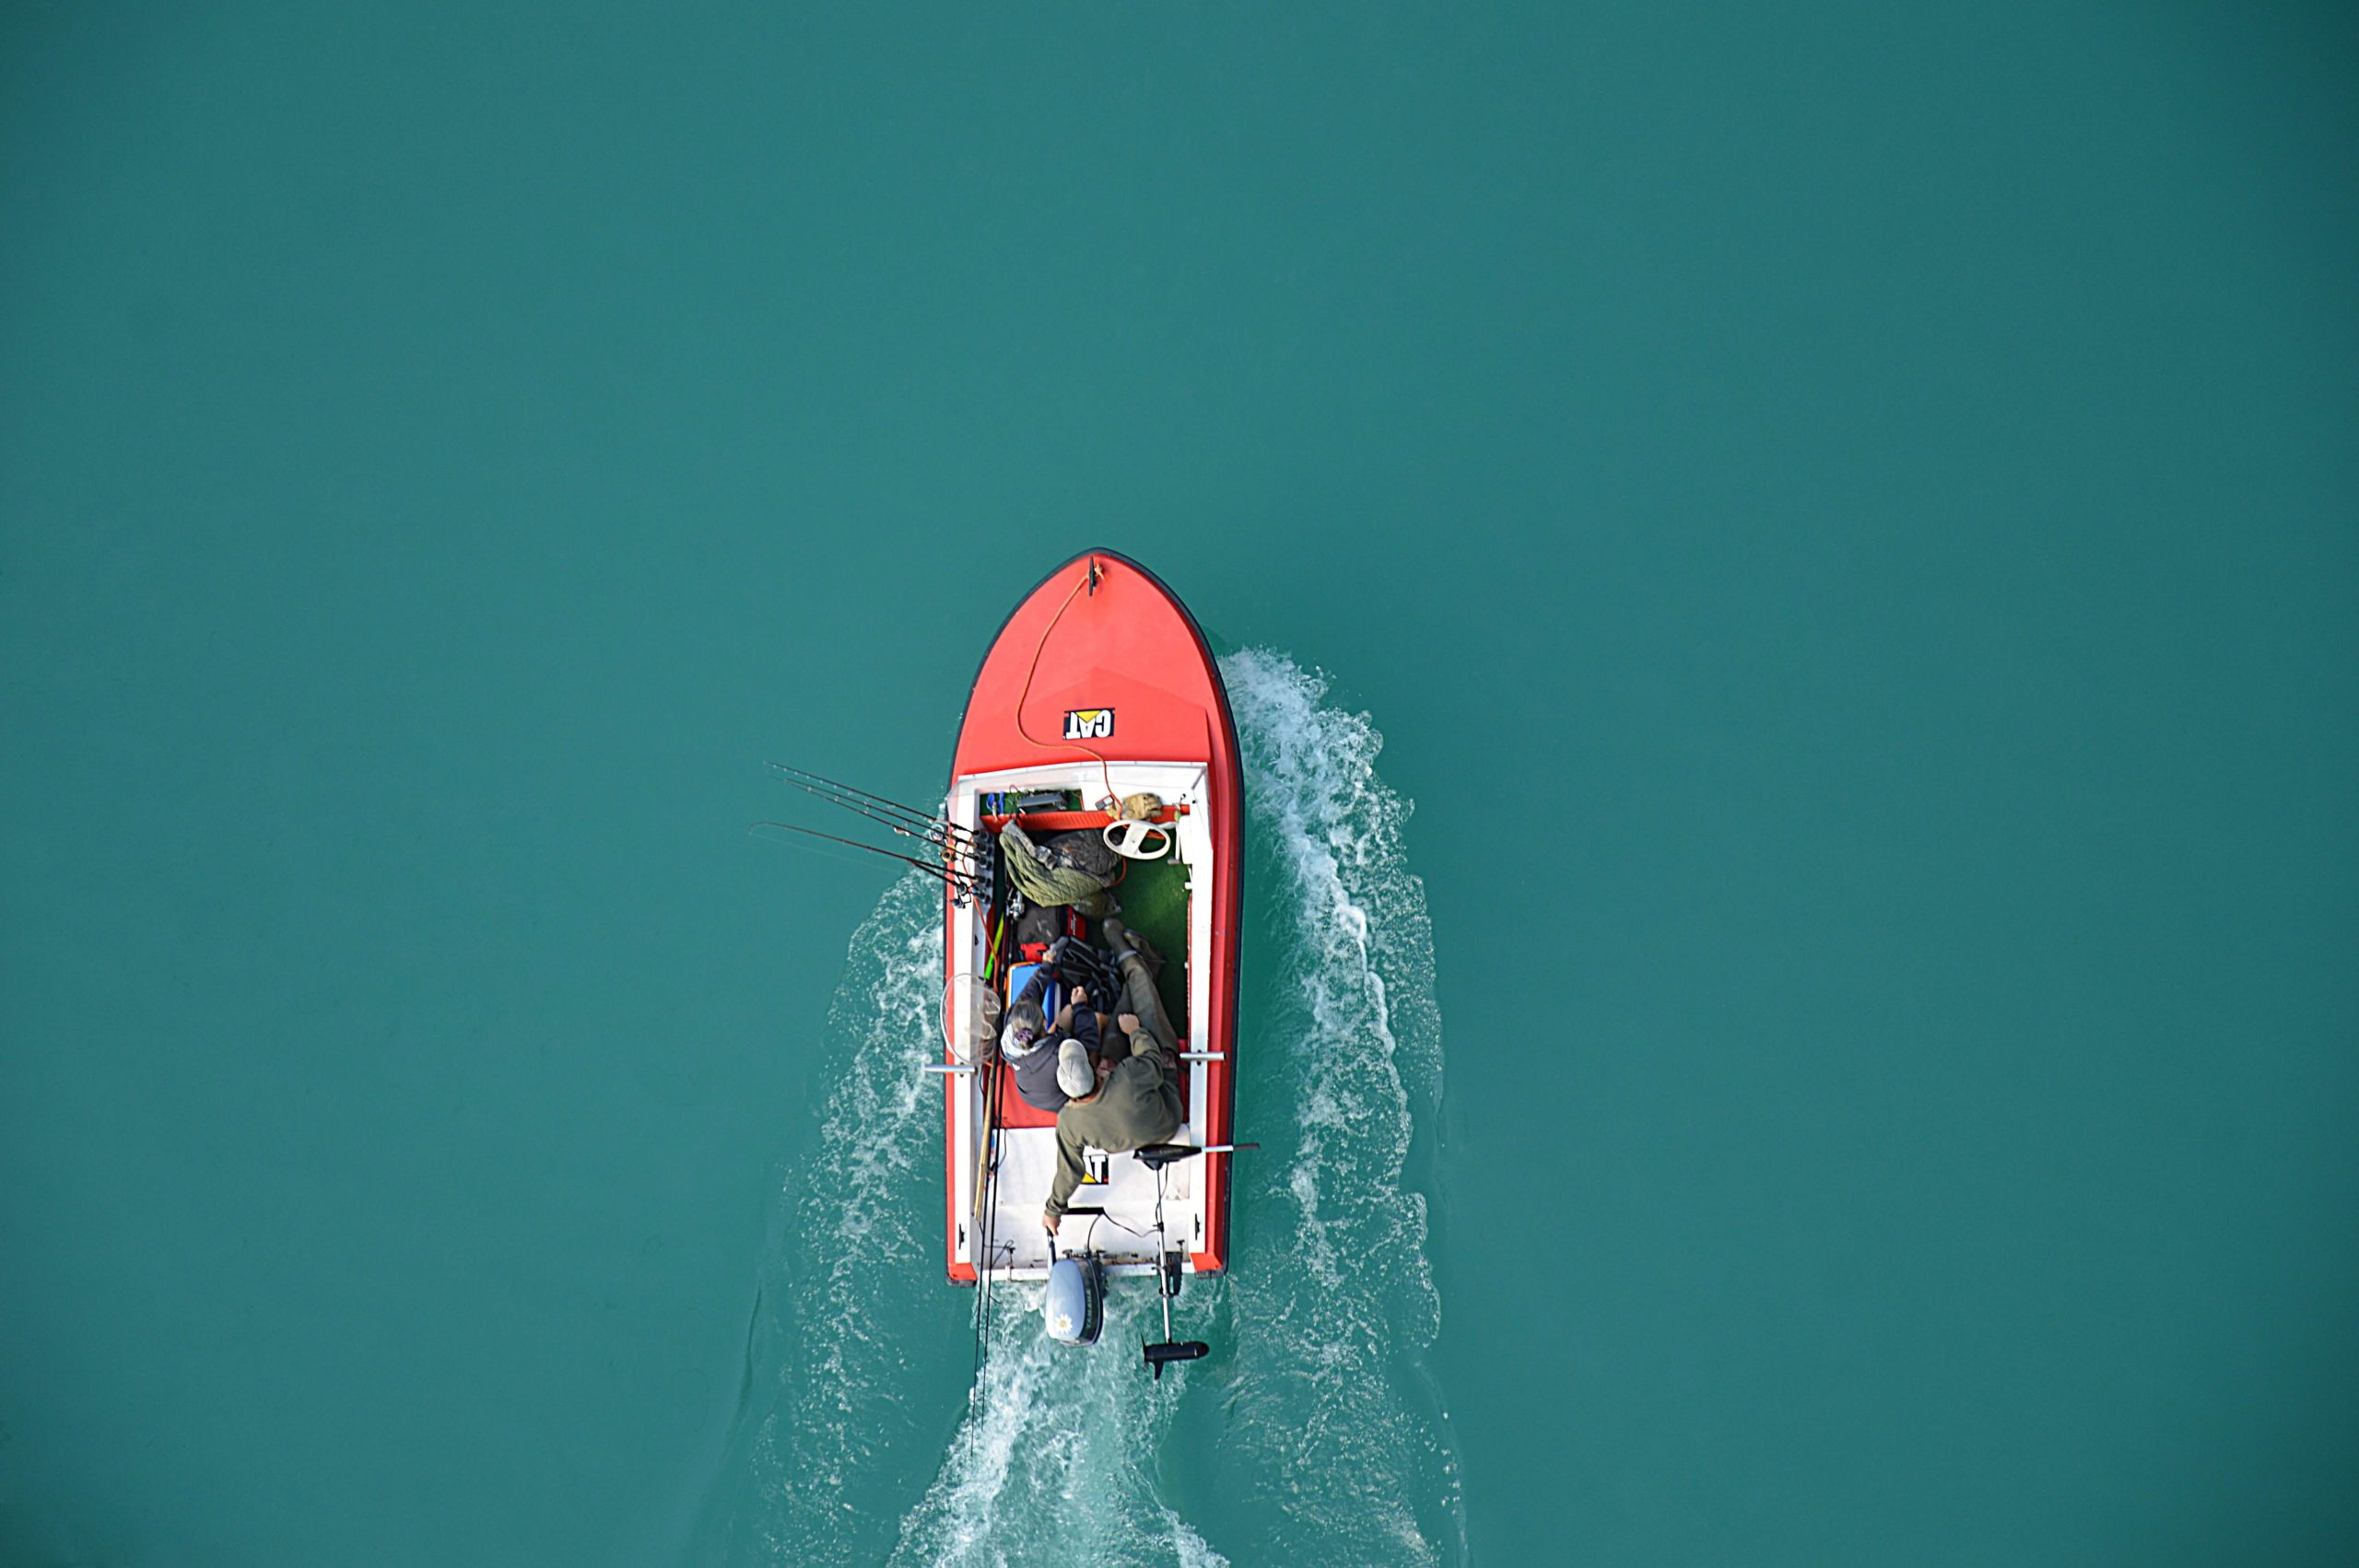 Fishermen on boat with fishing rods hanging off side